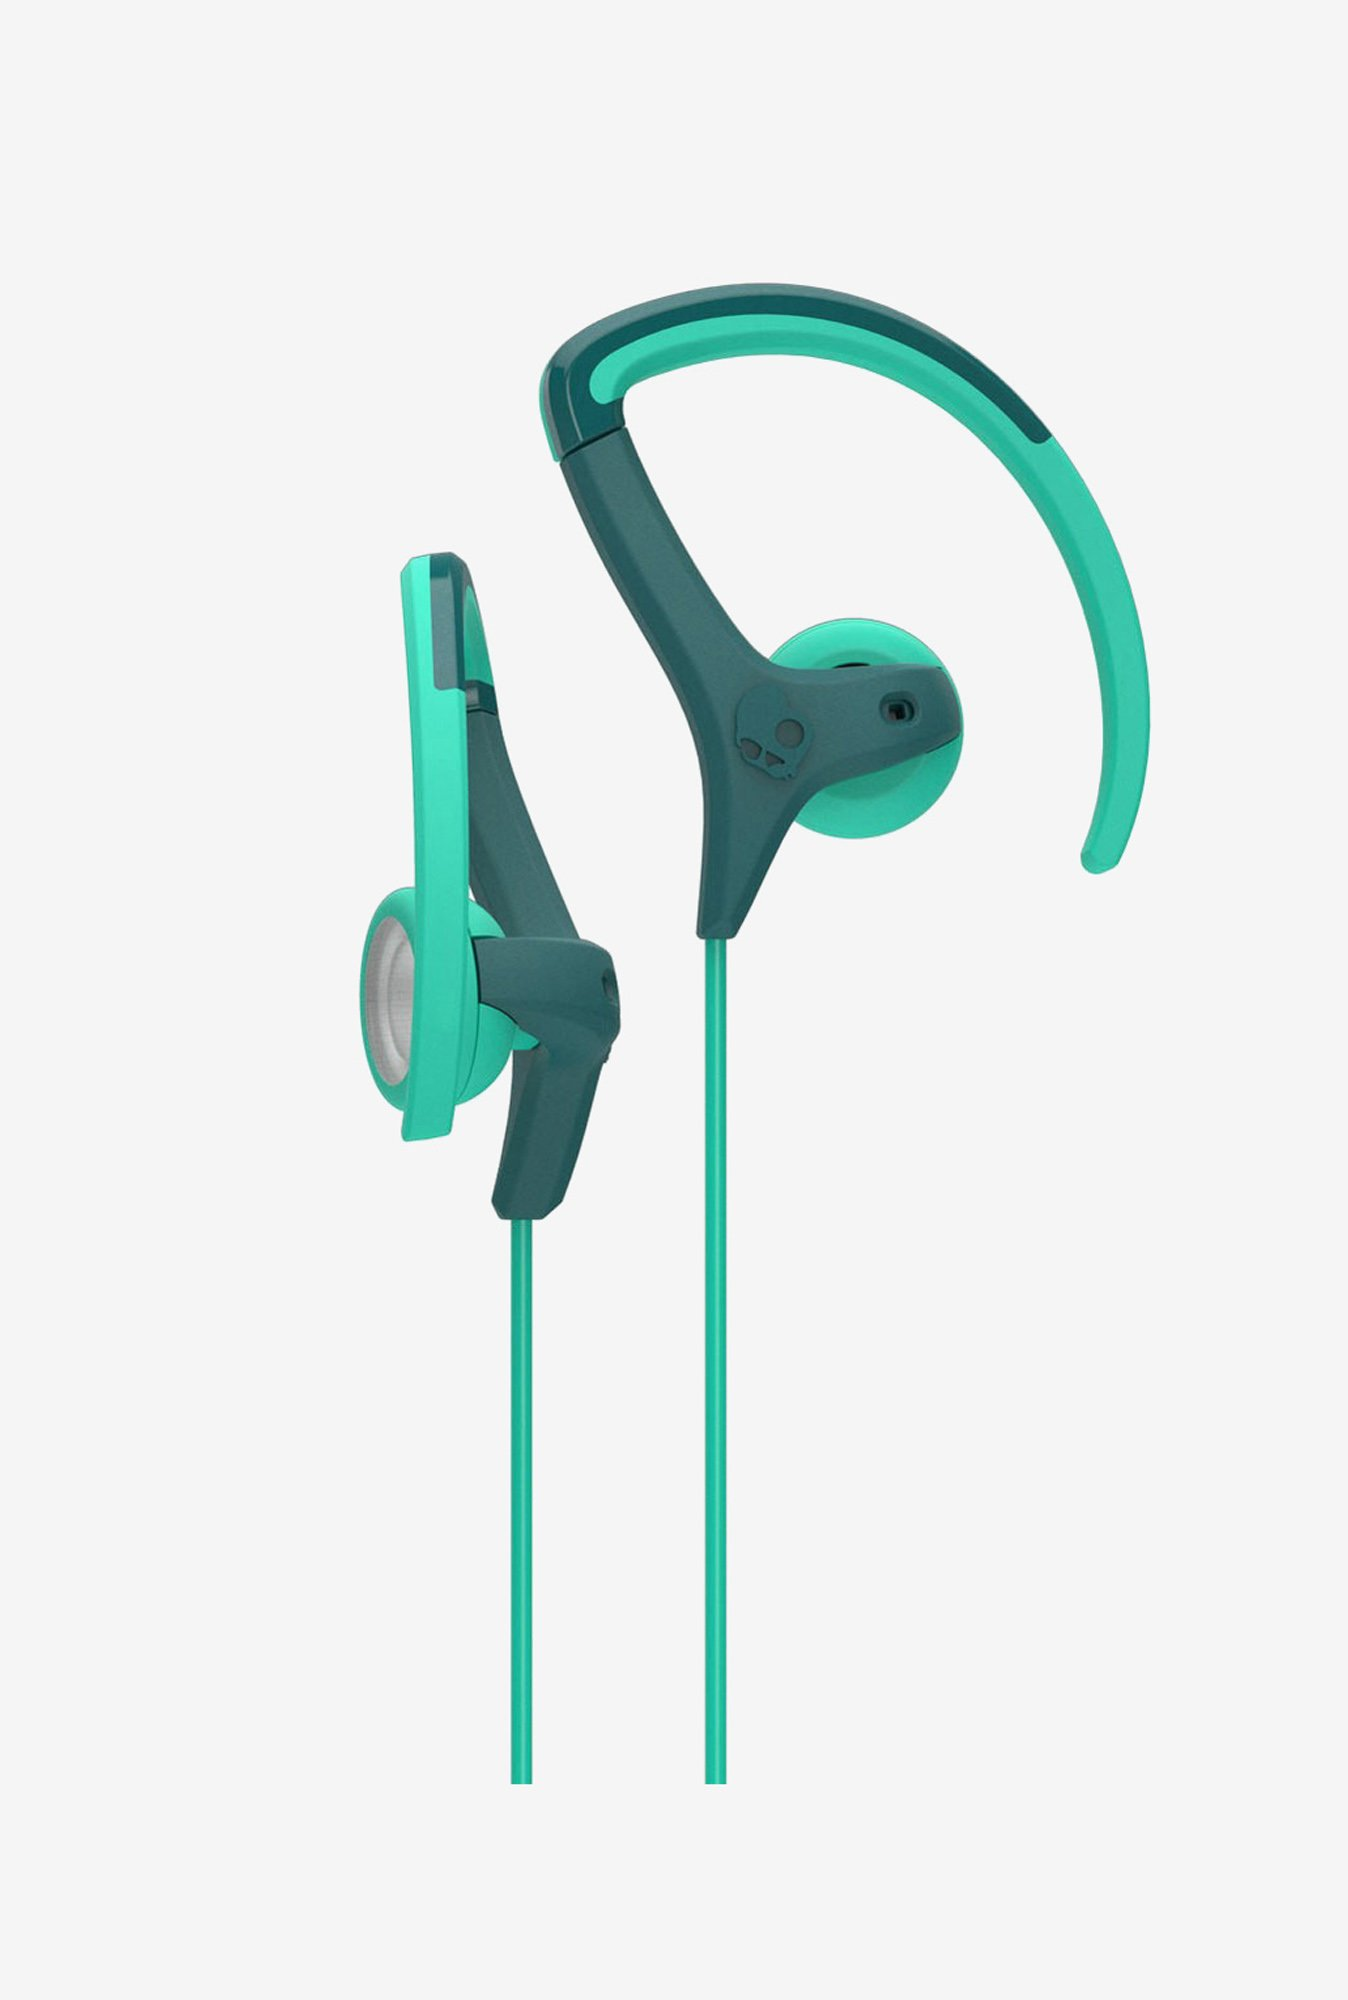 Skullcandy Chops 2.0 S4CHHZ-450 Headphone Teal Green